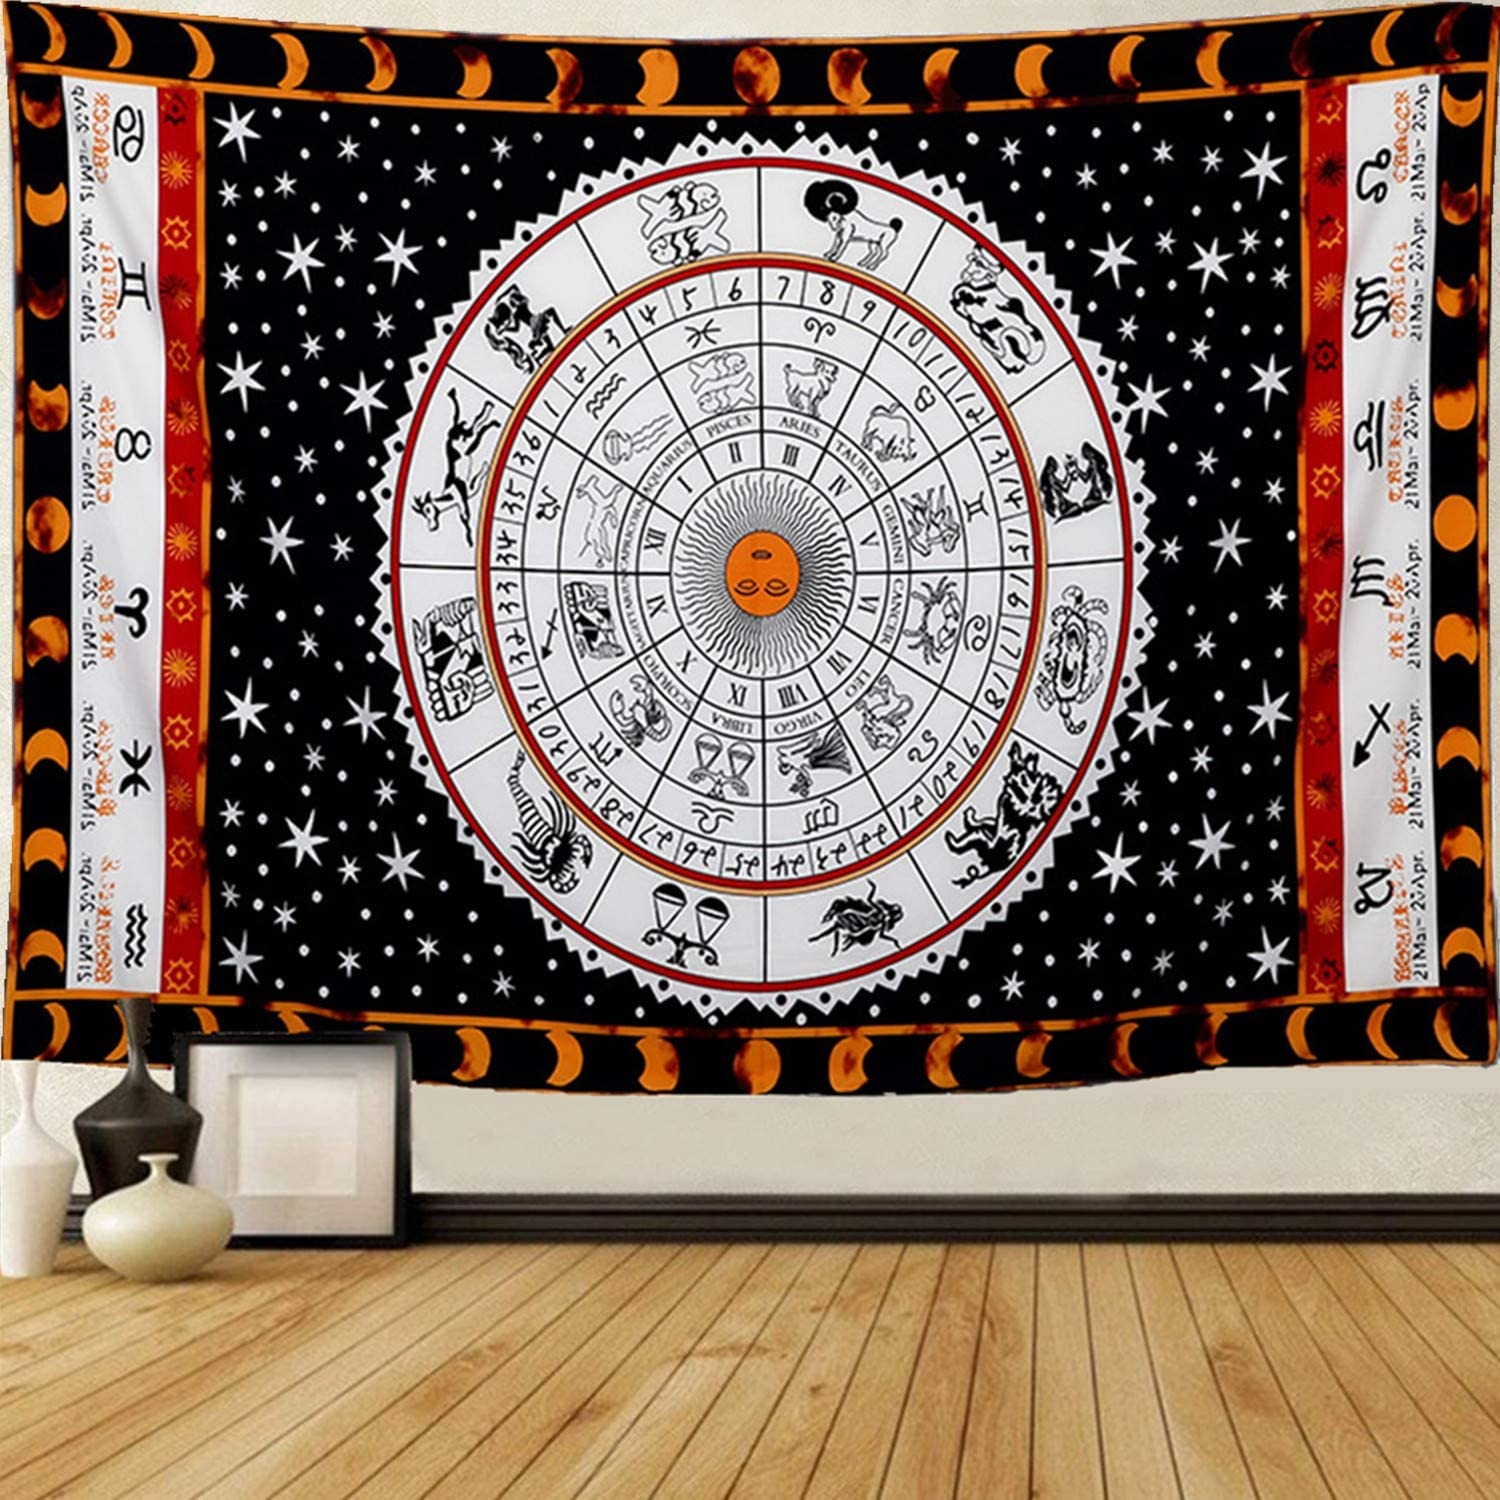 Dremisland Tapestry Wall Hanging-Hippie Mysterious 12 Constellations Moon and Sun Tapestry Wall Decor Wall Art for Astrology Lovers Dorm Decor Room Decor (M:51ʺL × 59ʺW)